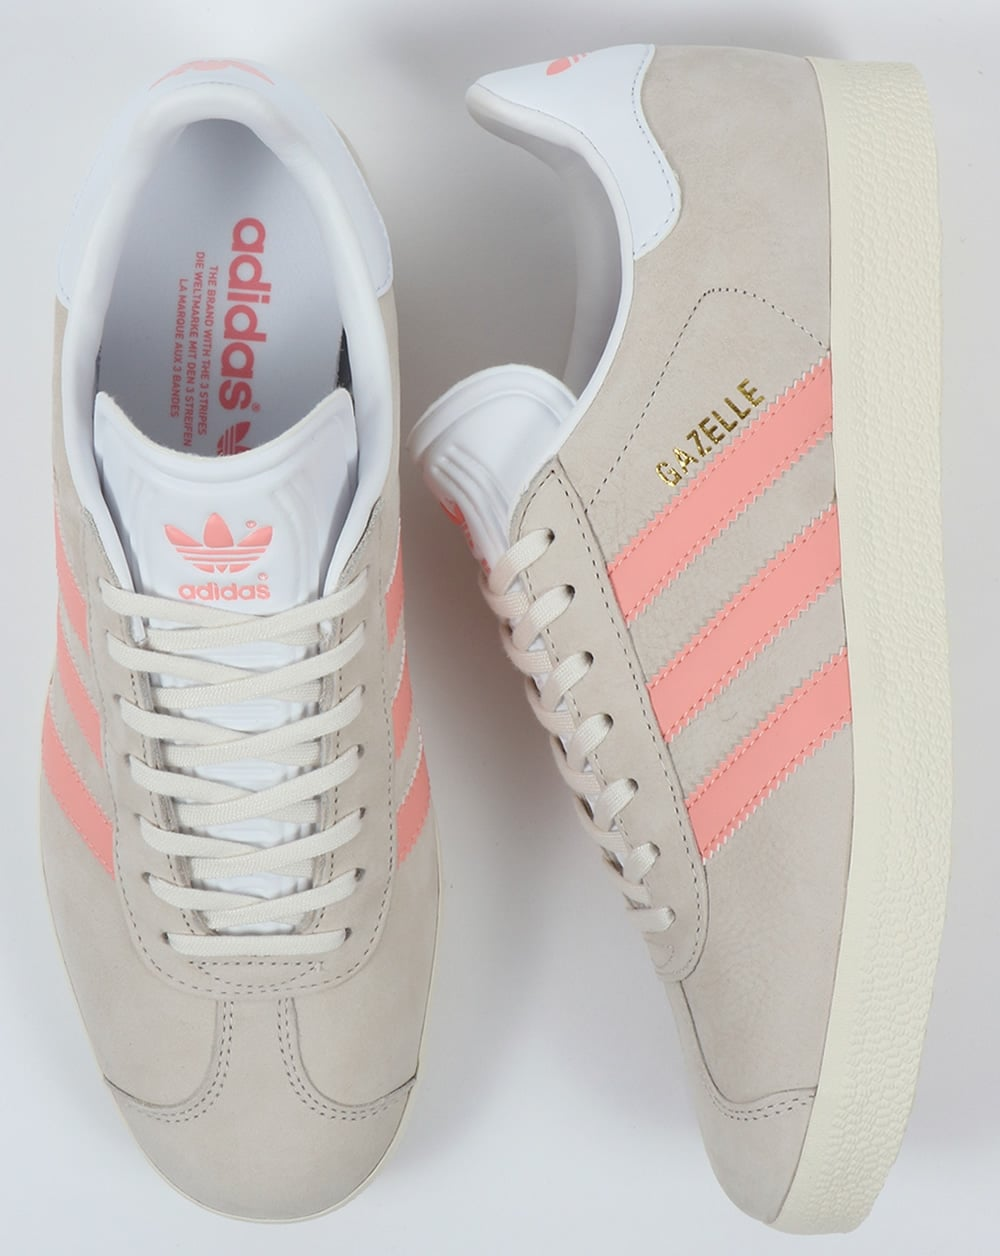 info for 46696 faab5 adidas gazelle shoes women pink light pink adidas superstars